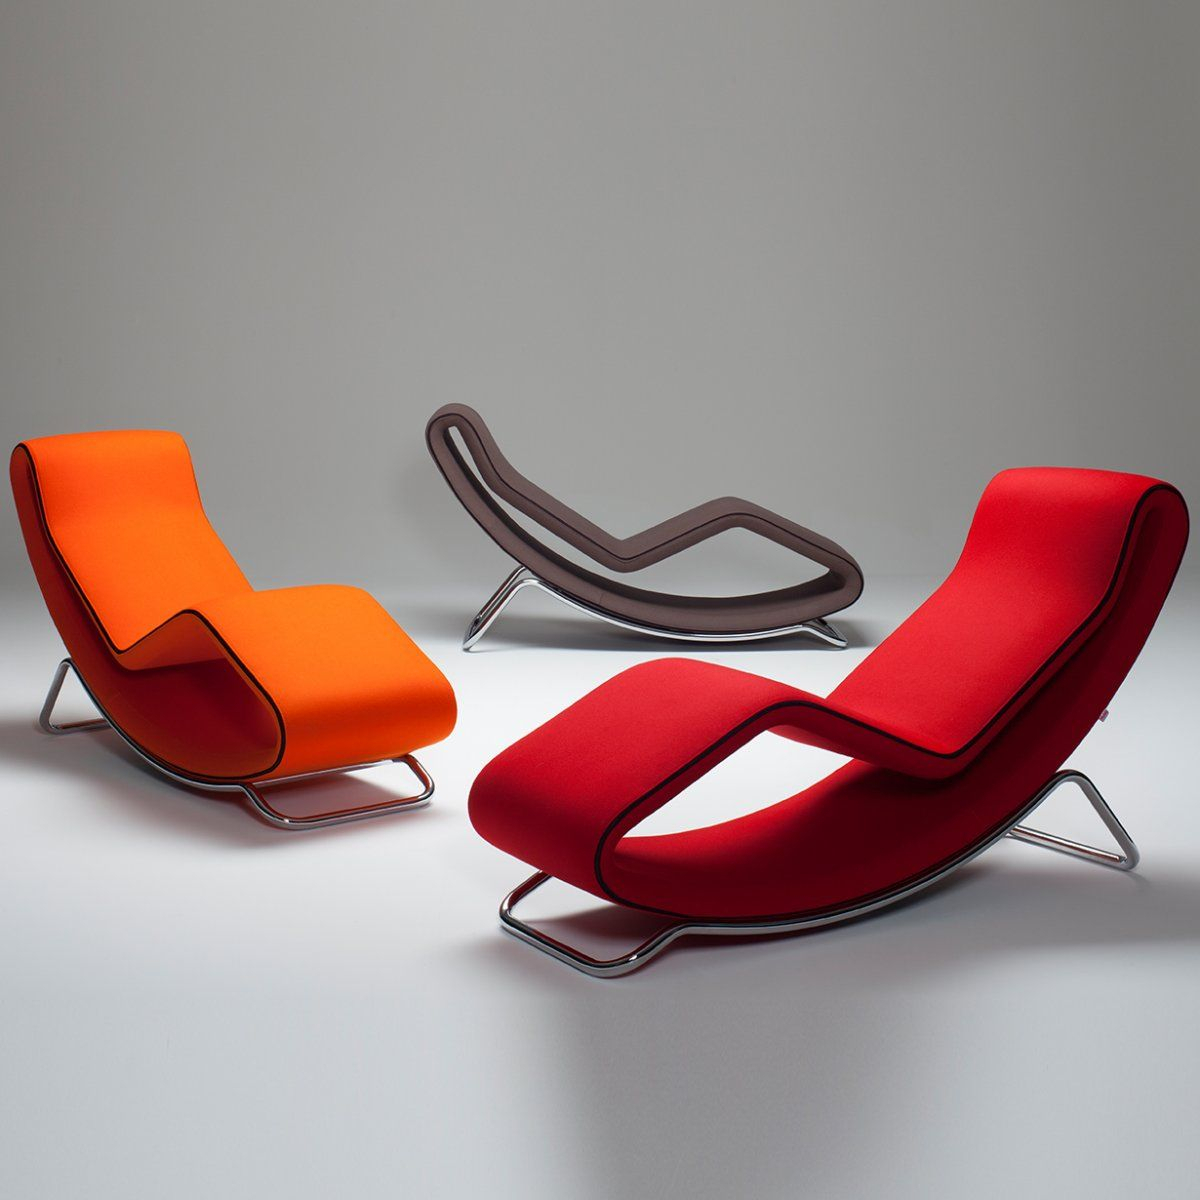 Lovethesign – Monza Divina Chaise Longue | Italian Furniture Intended For Focht Armchairs (View 6 of 15)